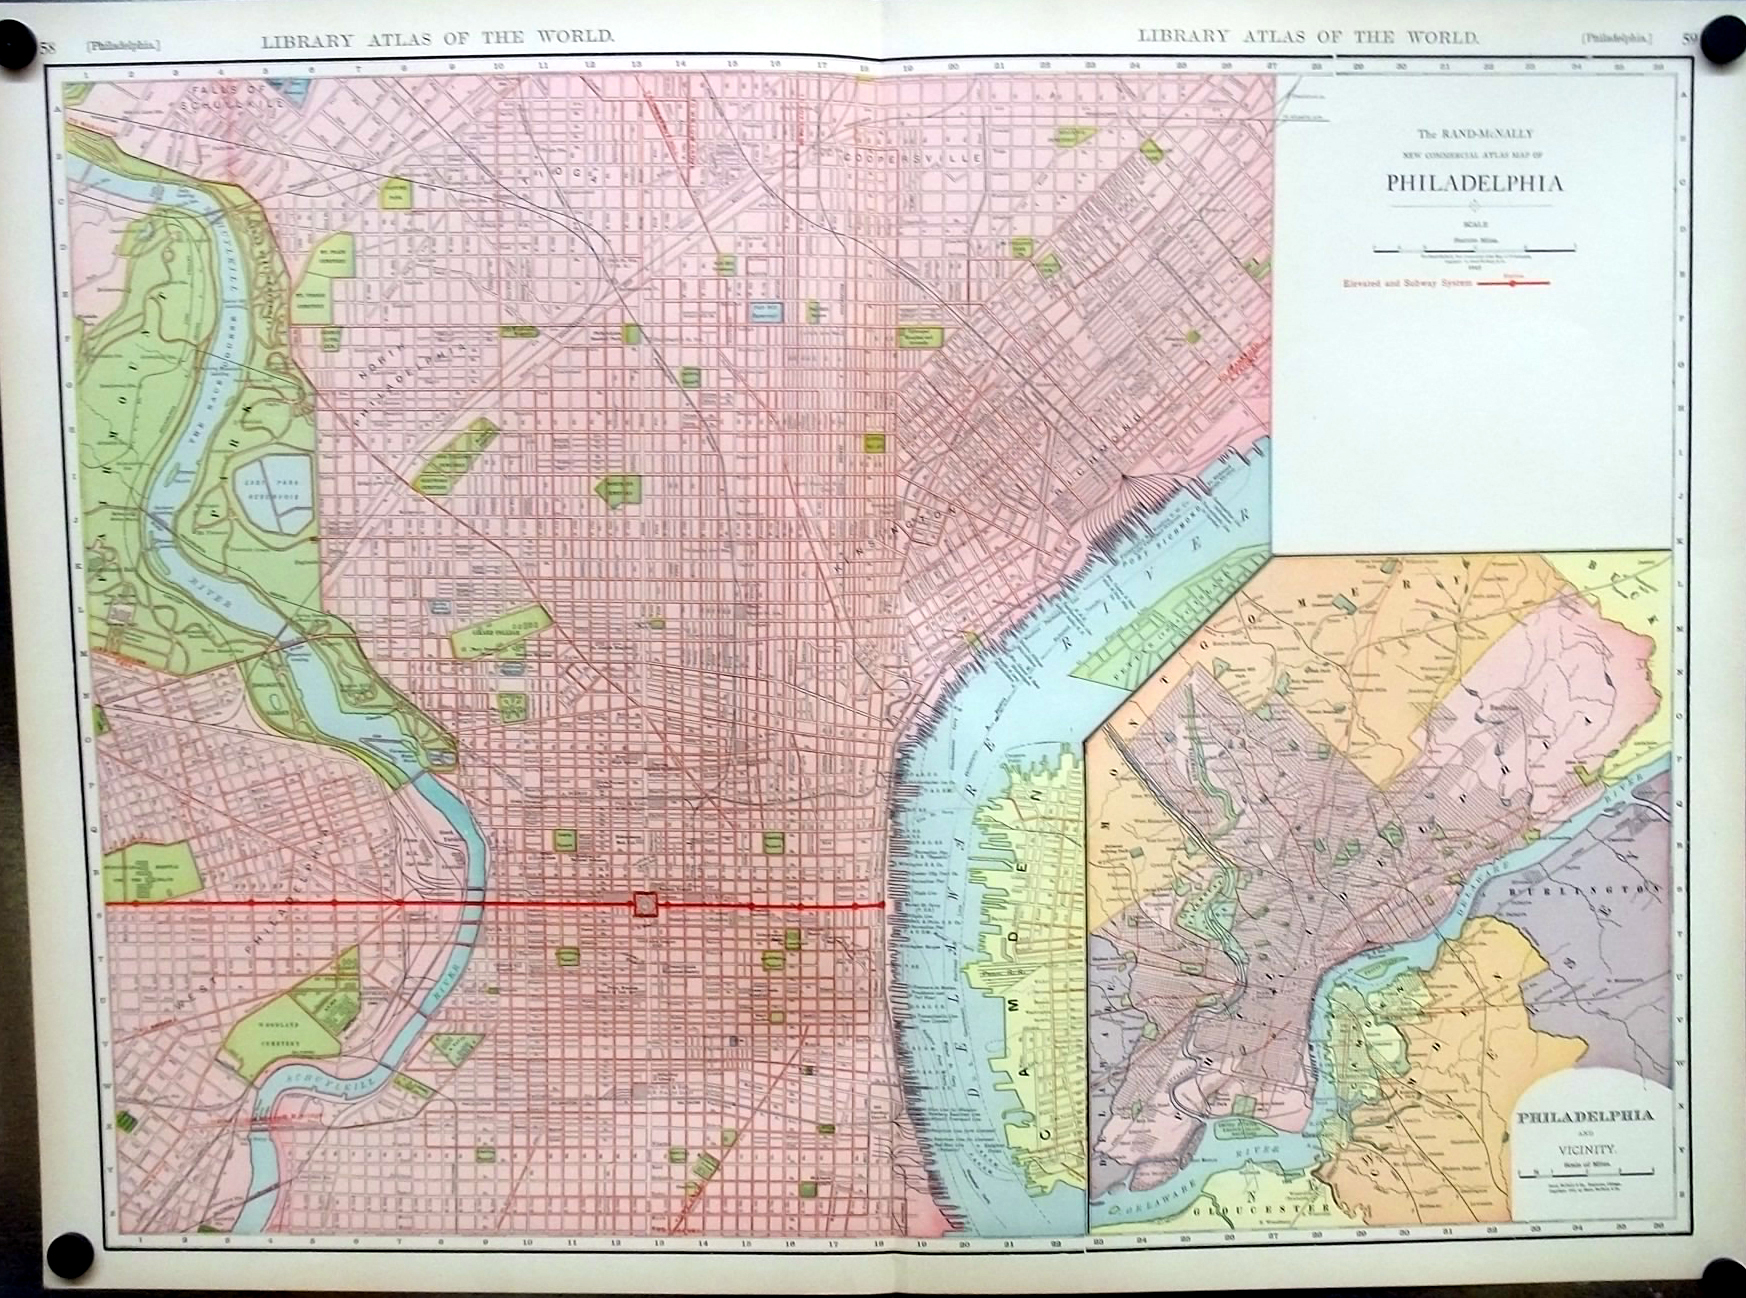 City of Philadelphia Pennsylvania 1912 Rand McNally color Map with Railroads